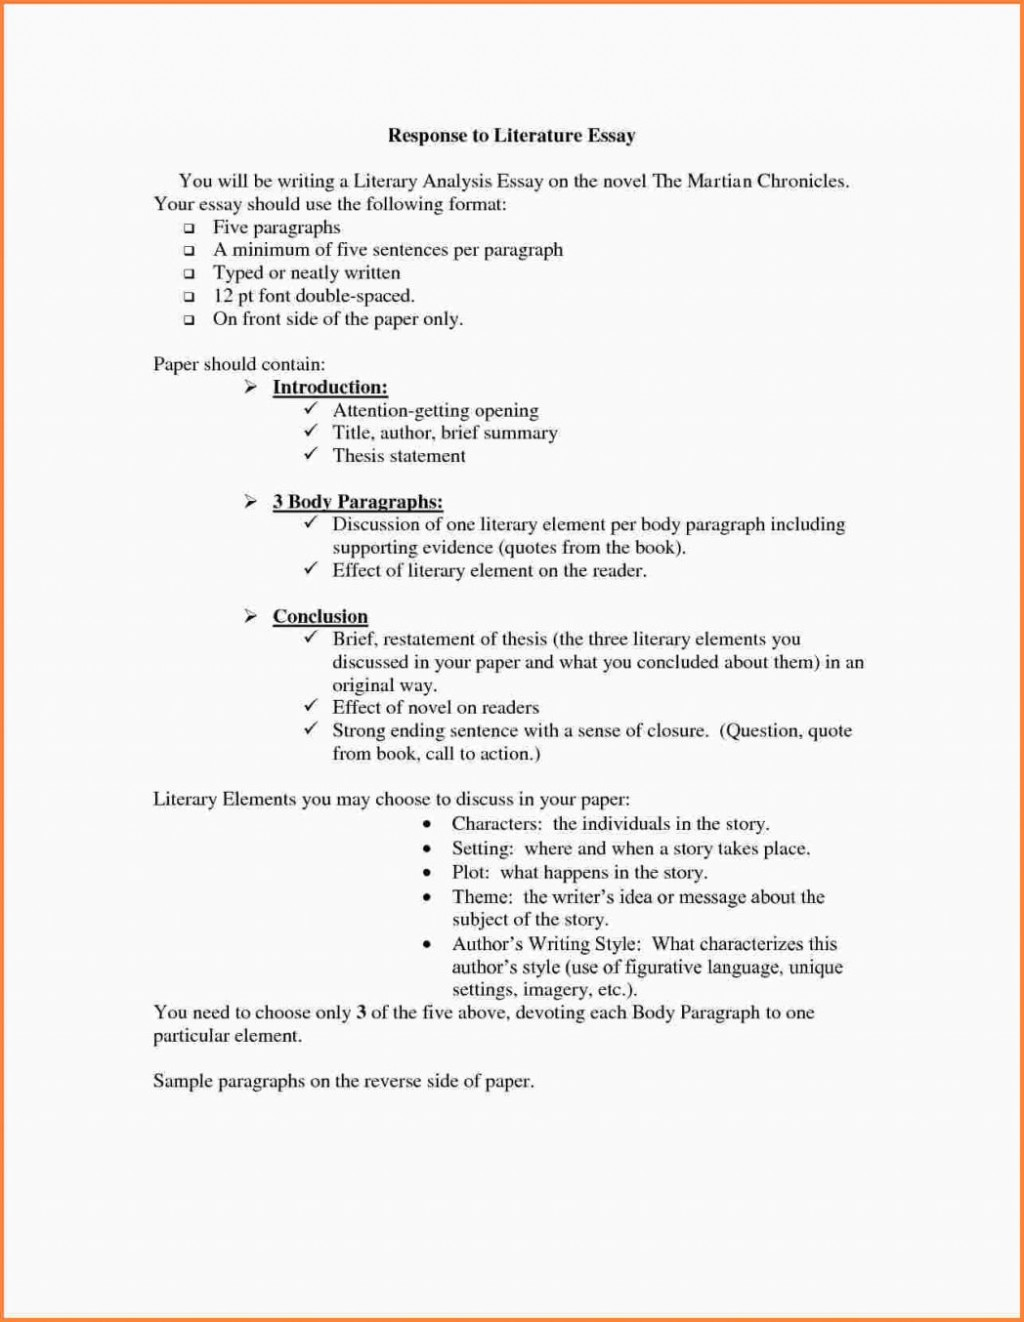 004 Literary Criticism Essay How To Write Poetry Analysis Text Response Outline Awesome Collection Of Example Best Examples Textual Format Excellent On The Great Gatsby Ideas Conclusion Sample Large